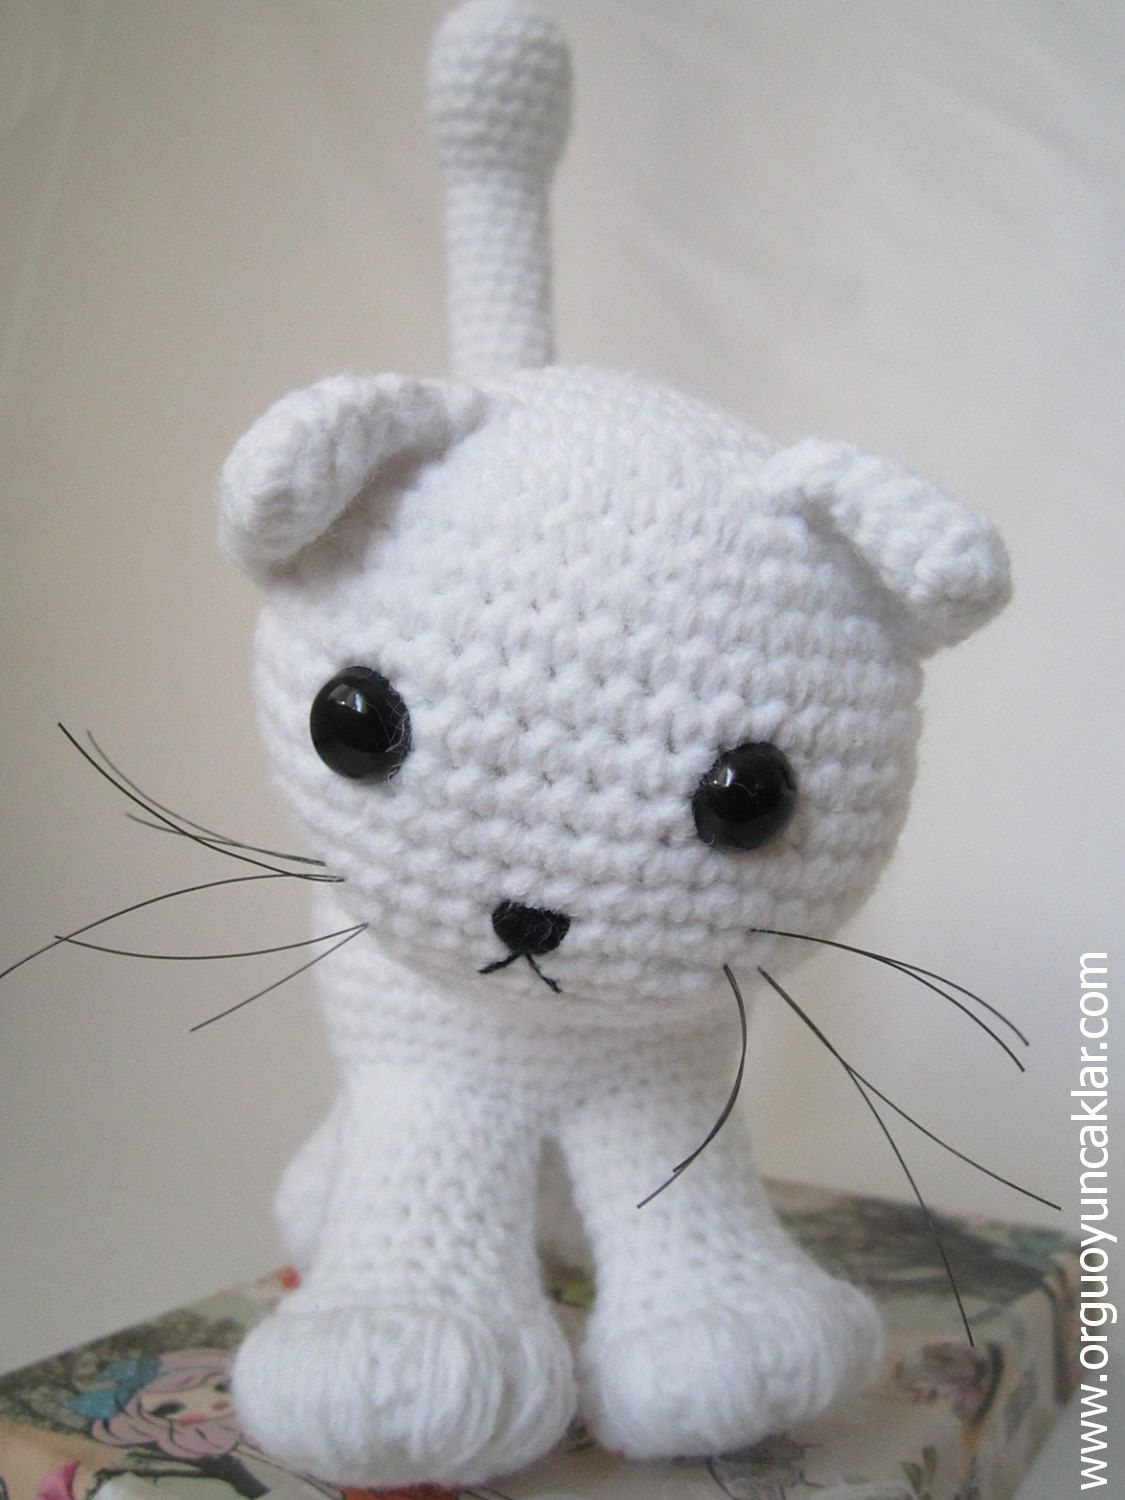 Ballerina cat doll crochet pattern - Amigurumi Today | 1500x1125